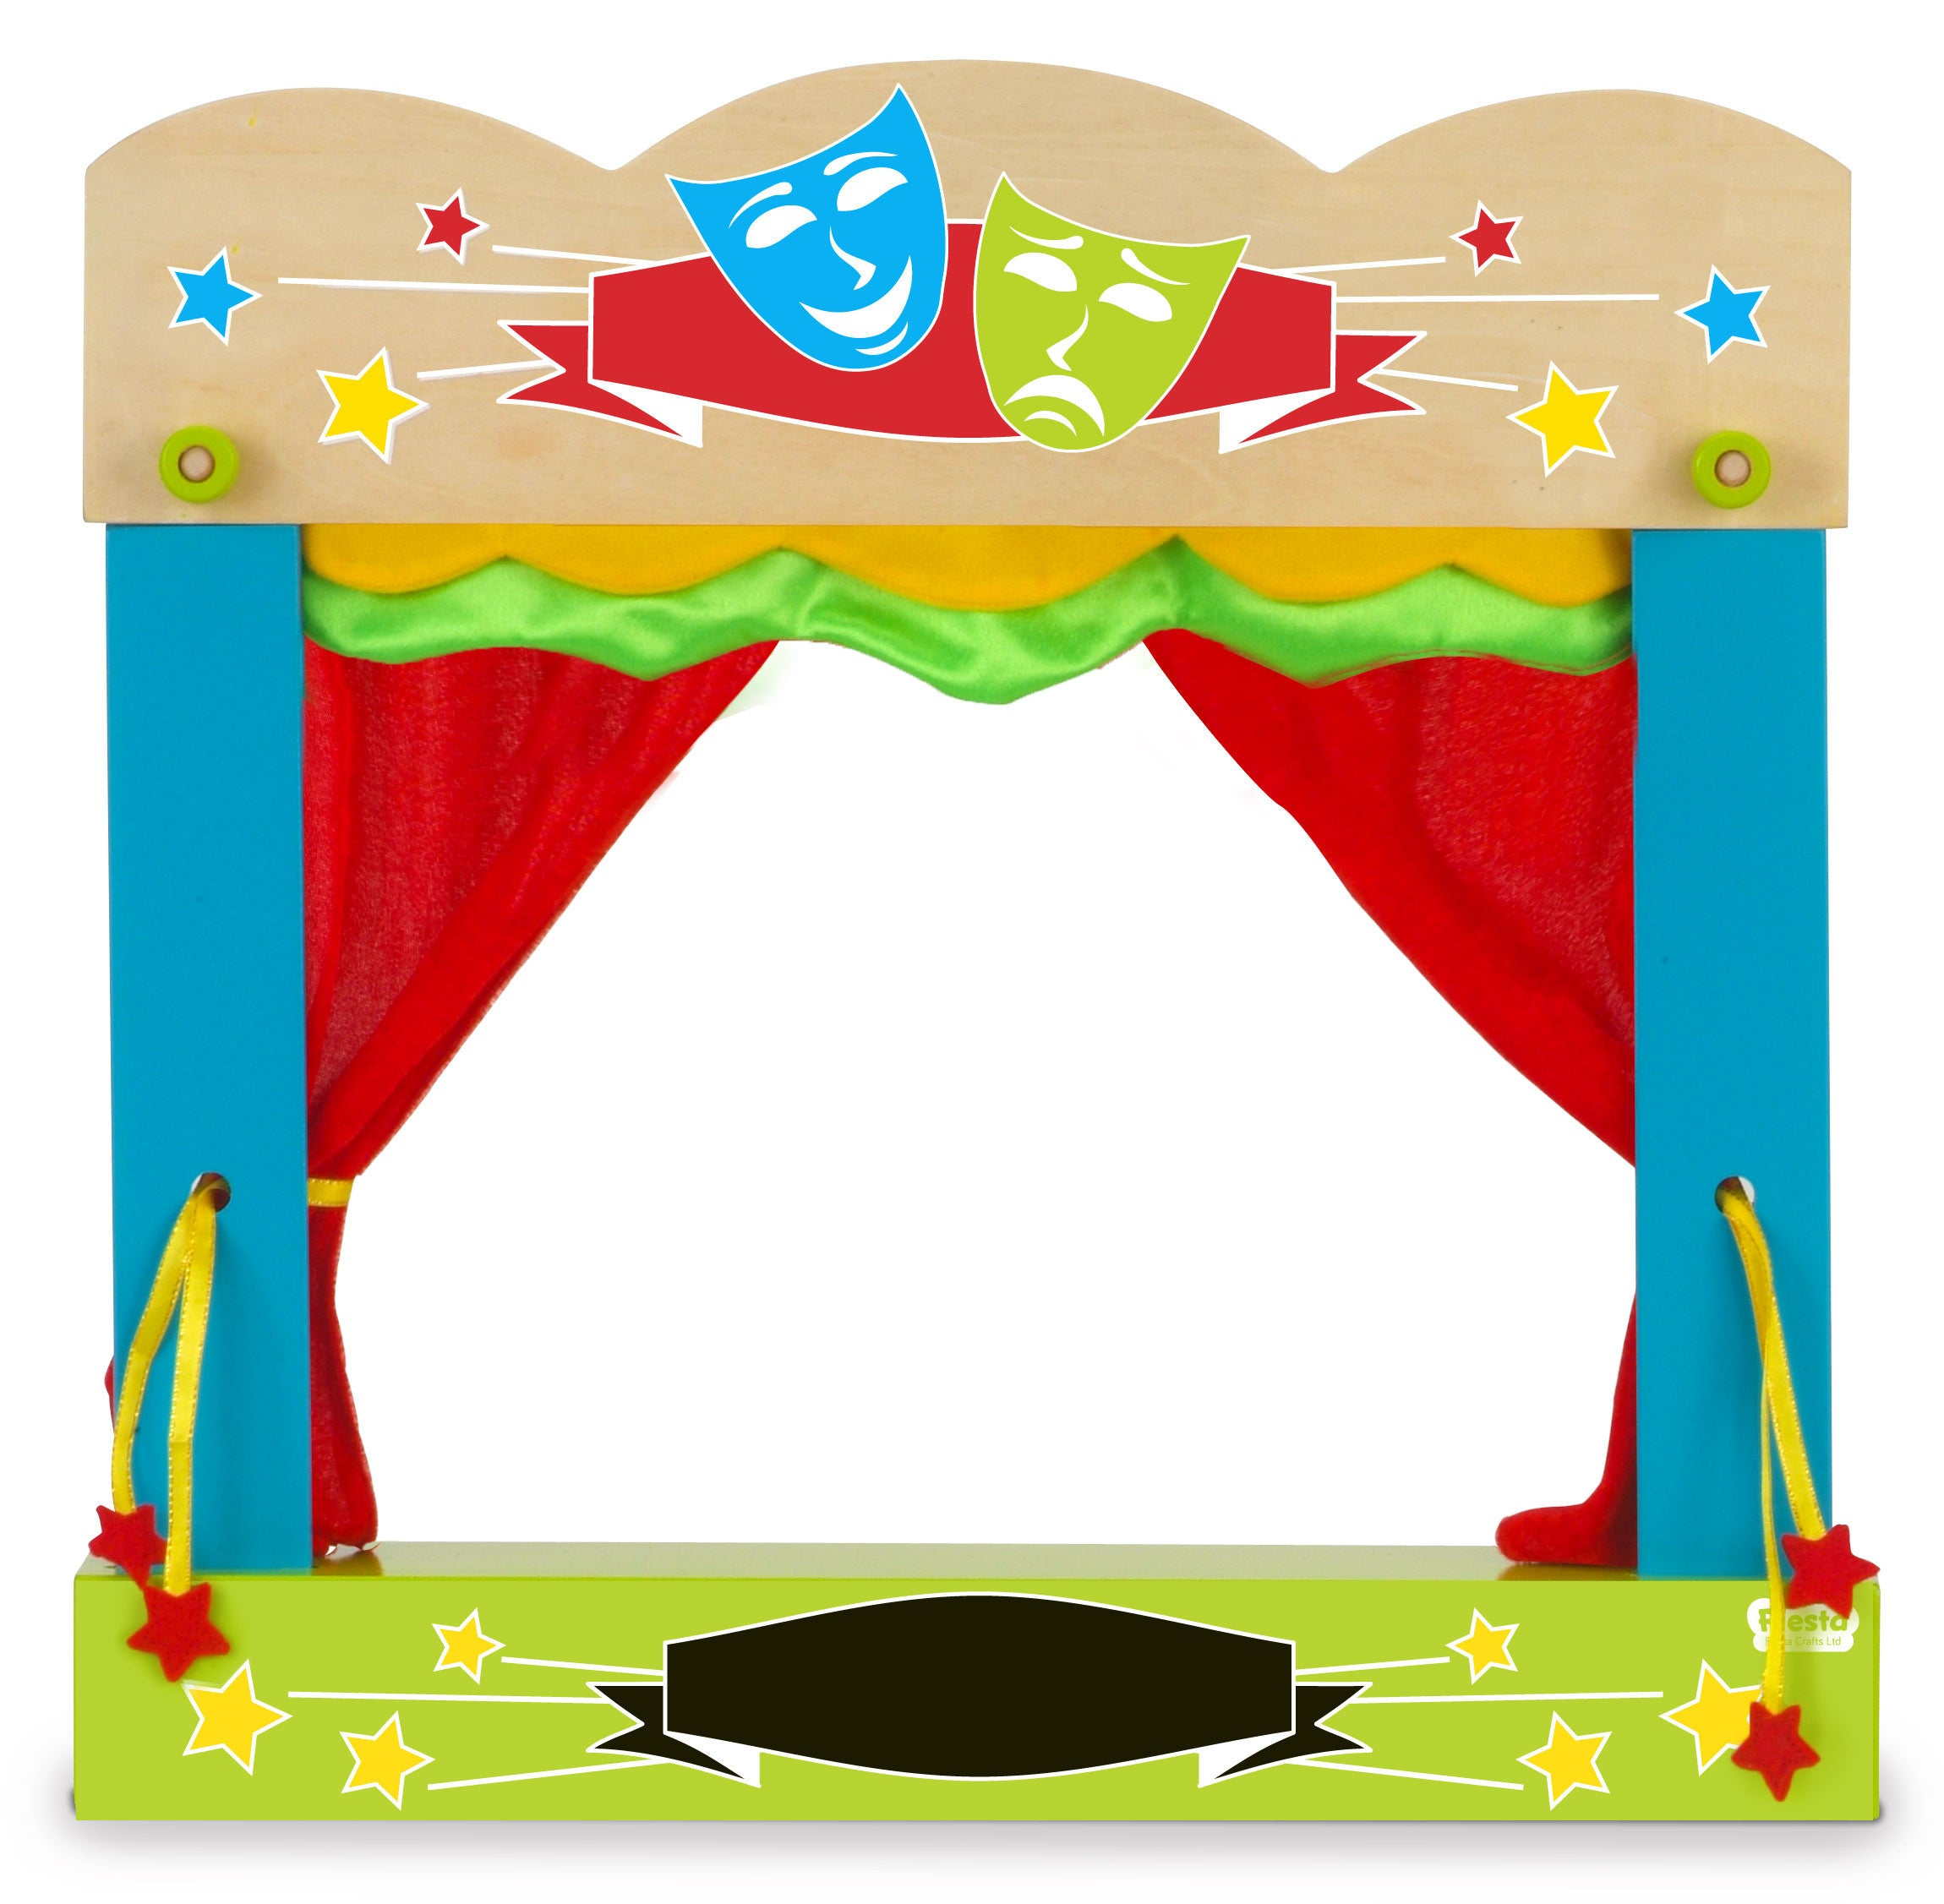 Puppet theatre assembled out of carry case